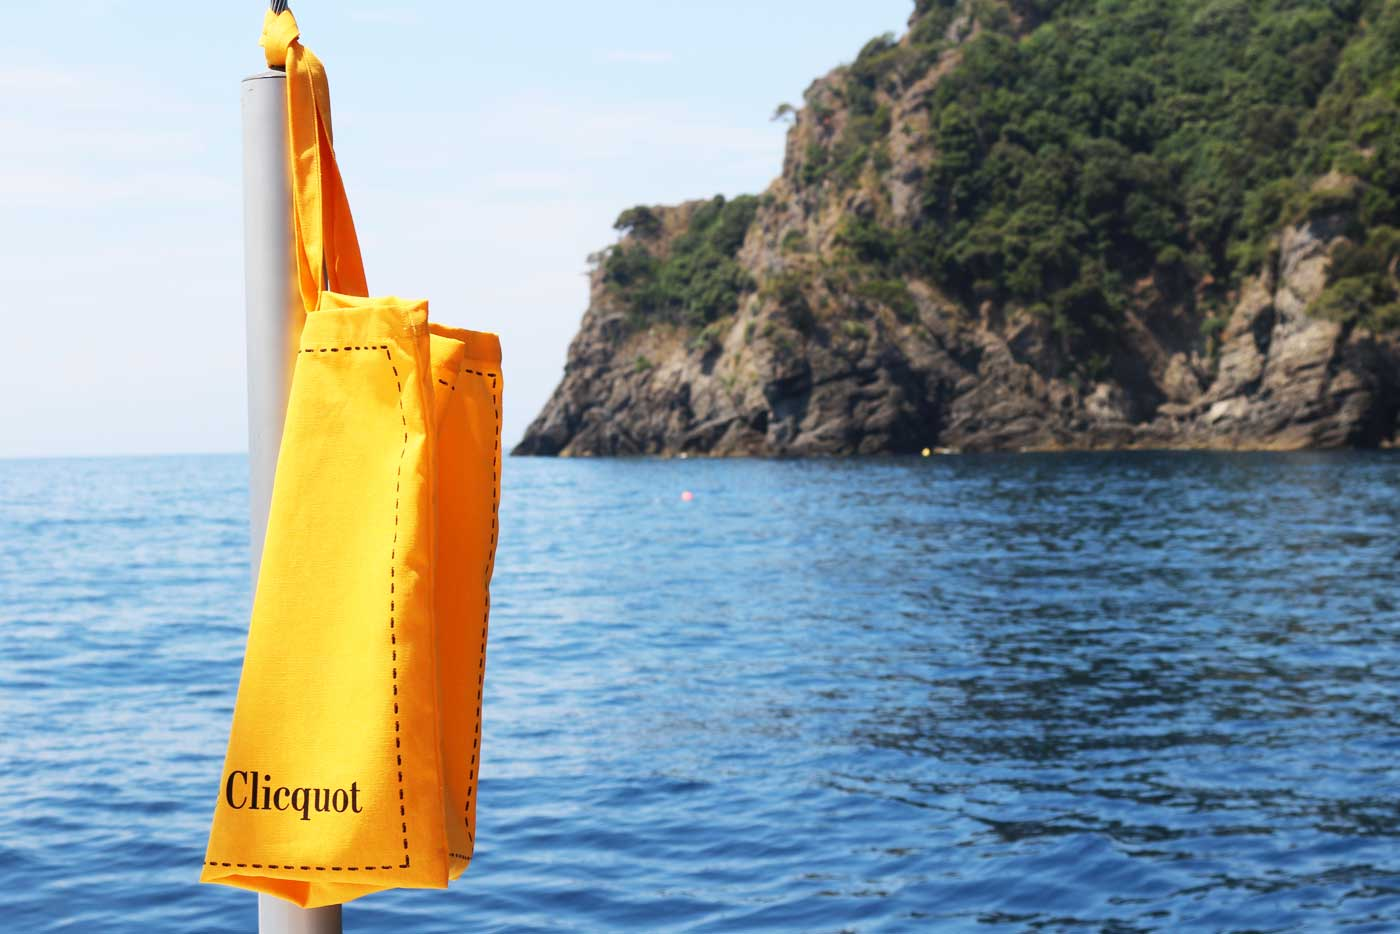 Clicquot-Rich-img-post-3